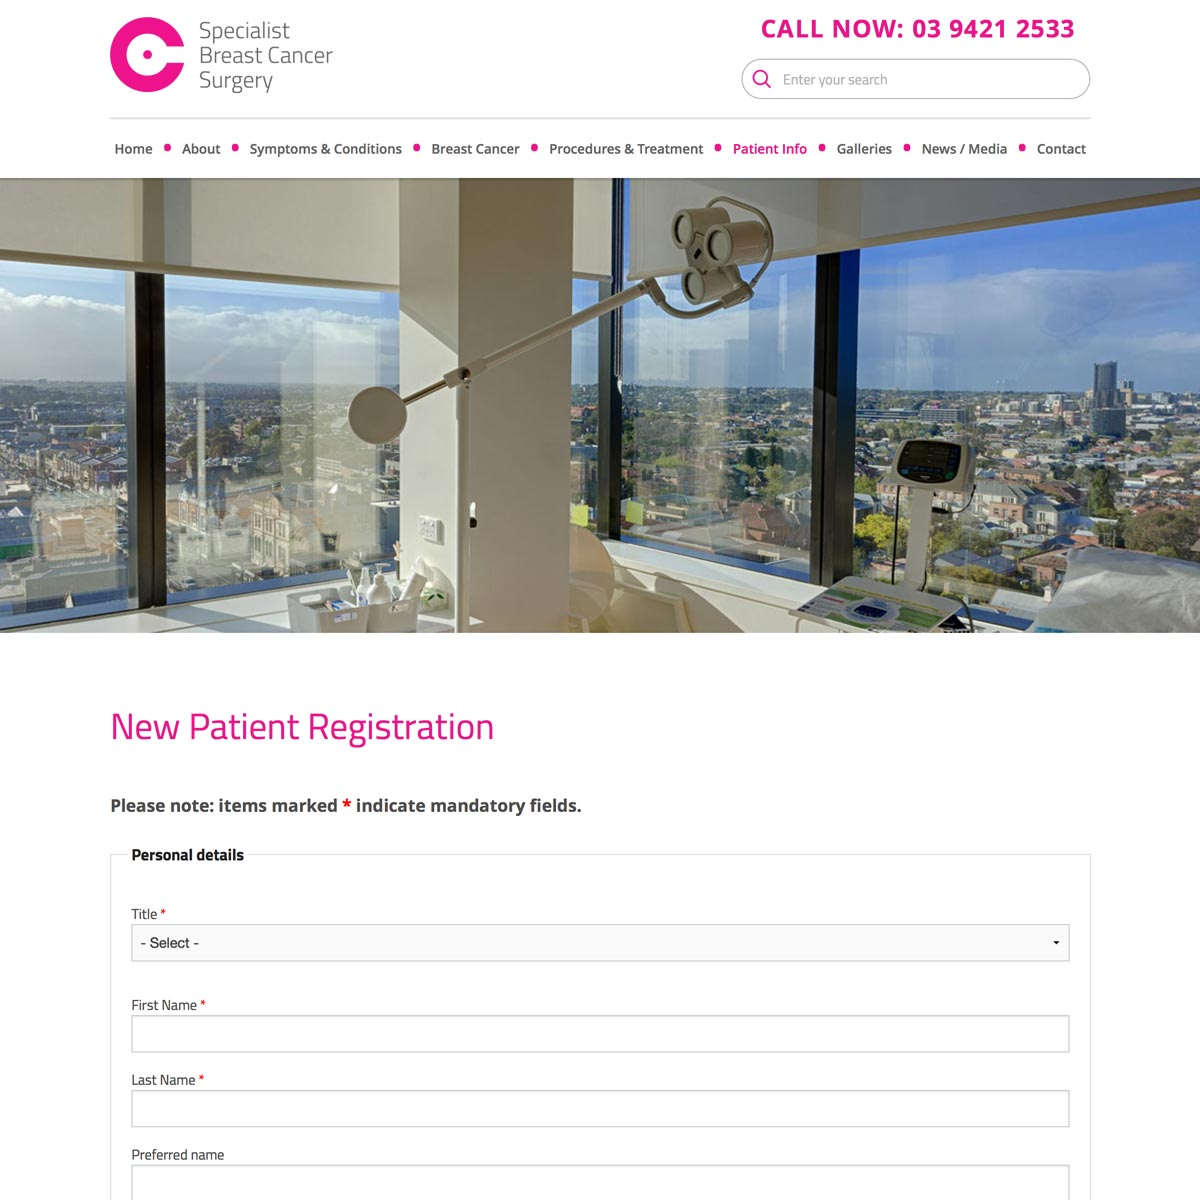 Breast Cancer Specialist - New Patient Registration